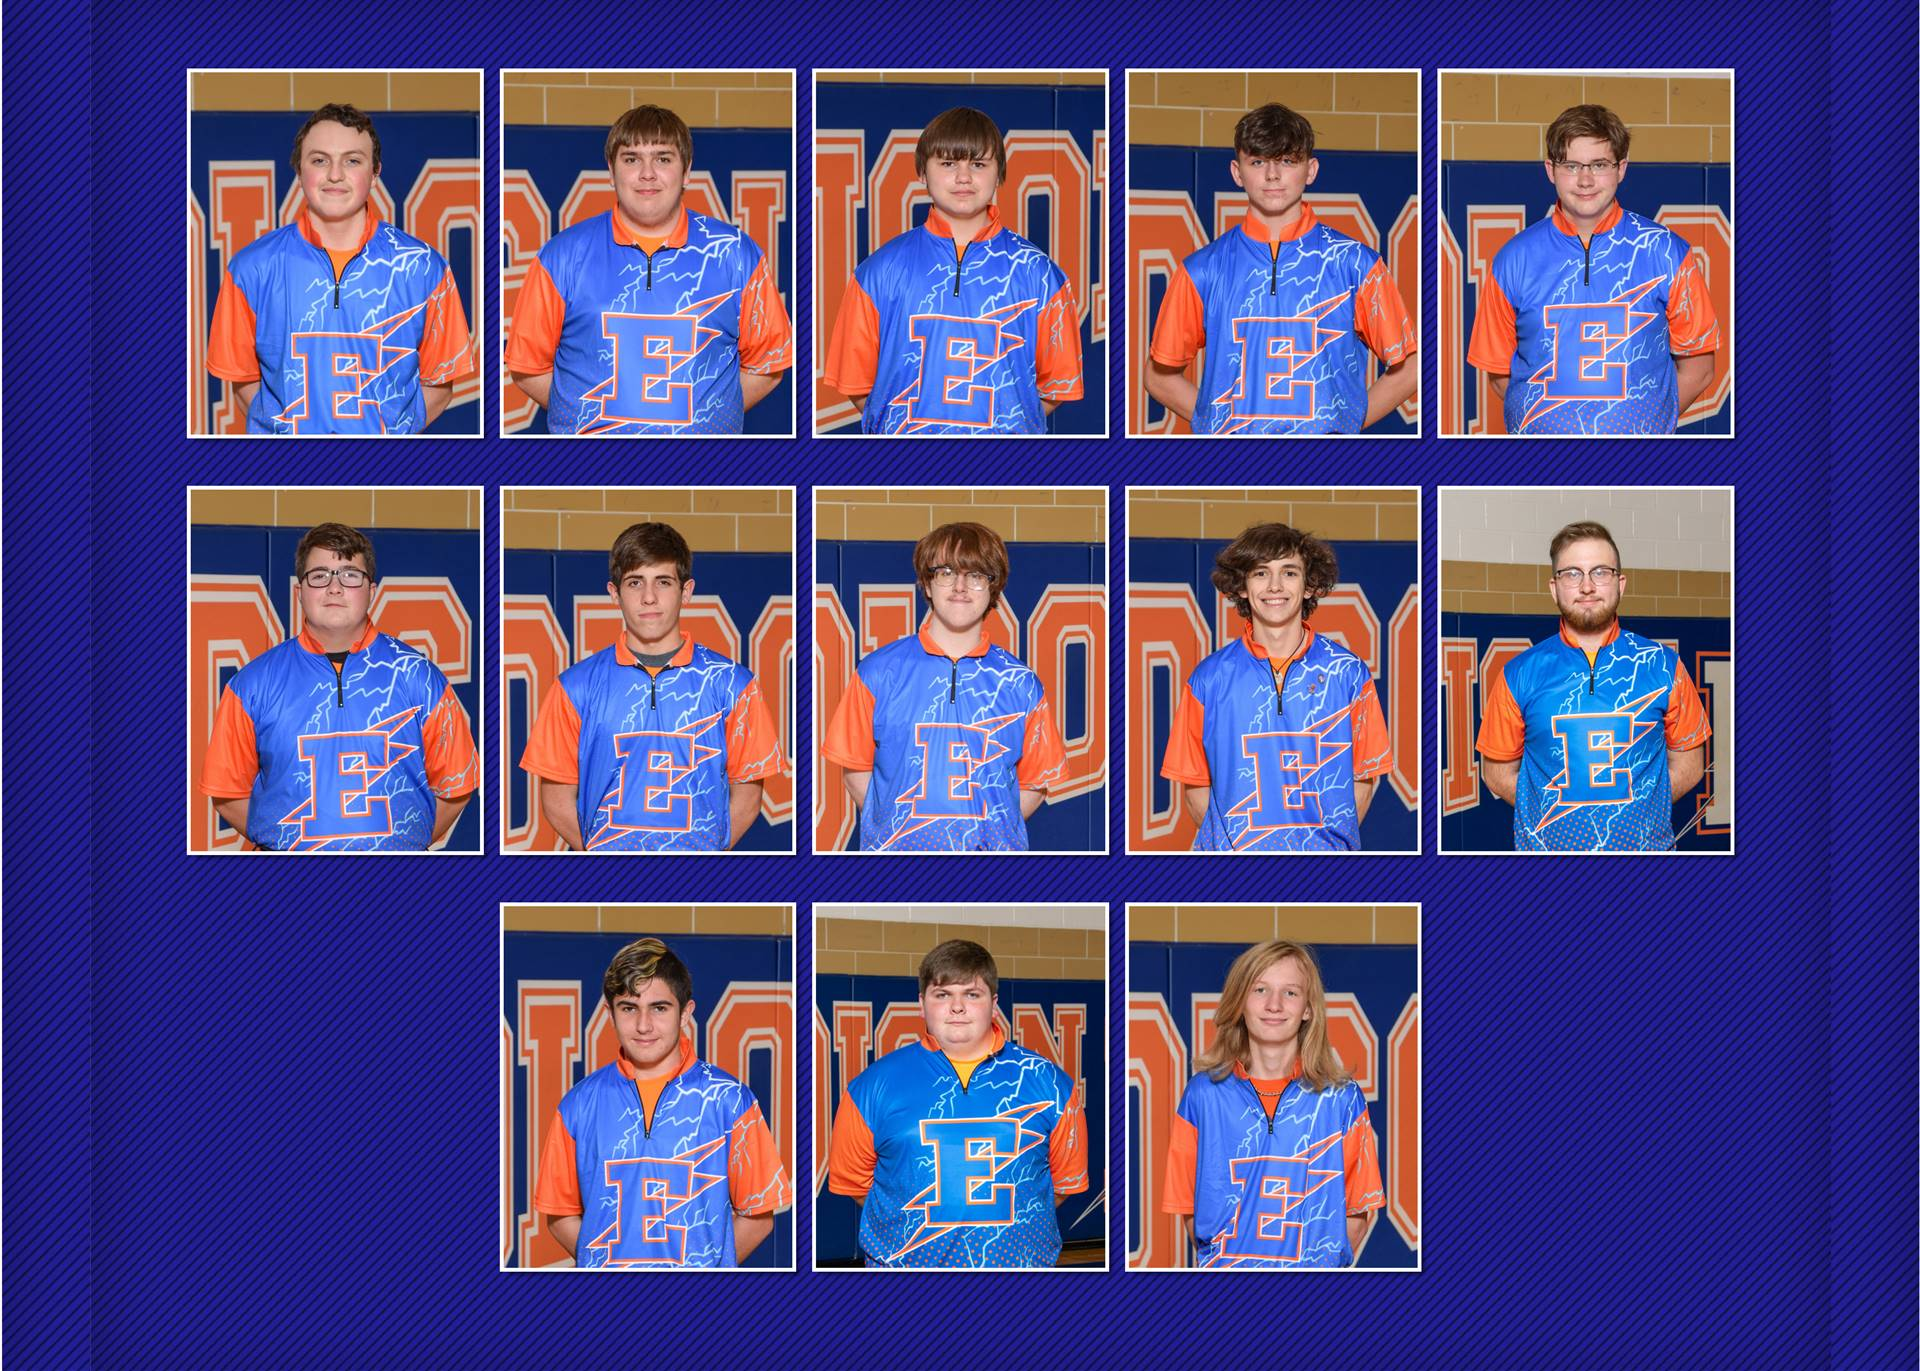 2020-21 Charger Bowling Team